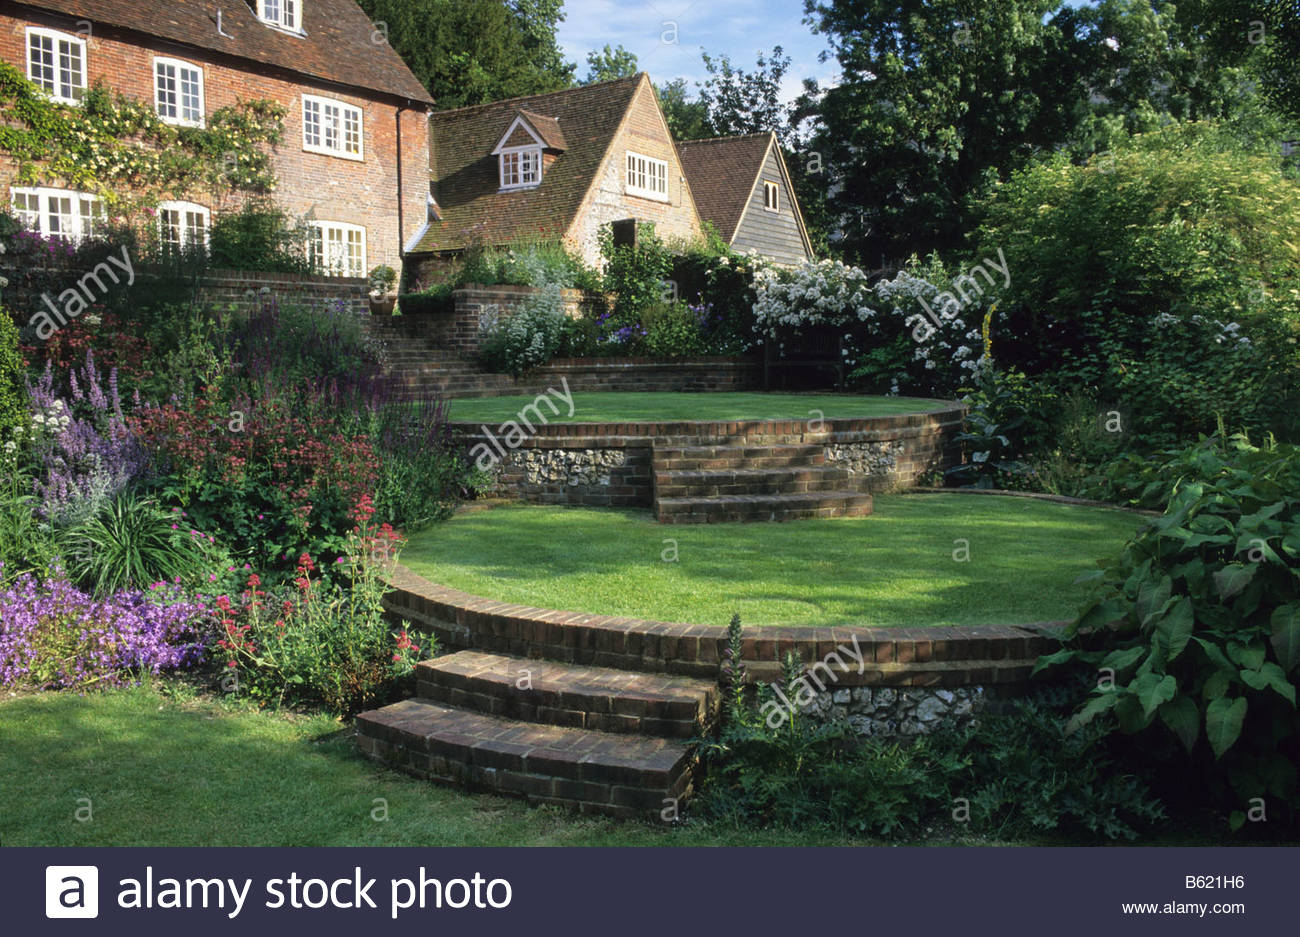 Home Farm Hampshire Design Fiona Lawrenson Terraced Circular Lawns And  Steps On Sloping Site With View Of House